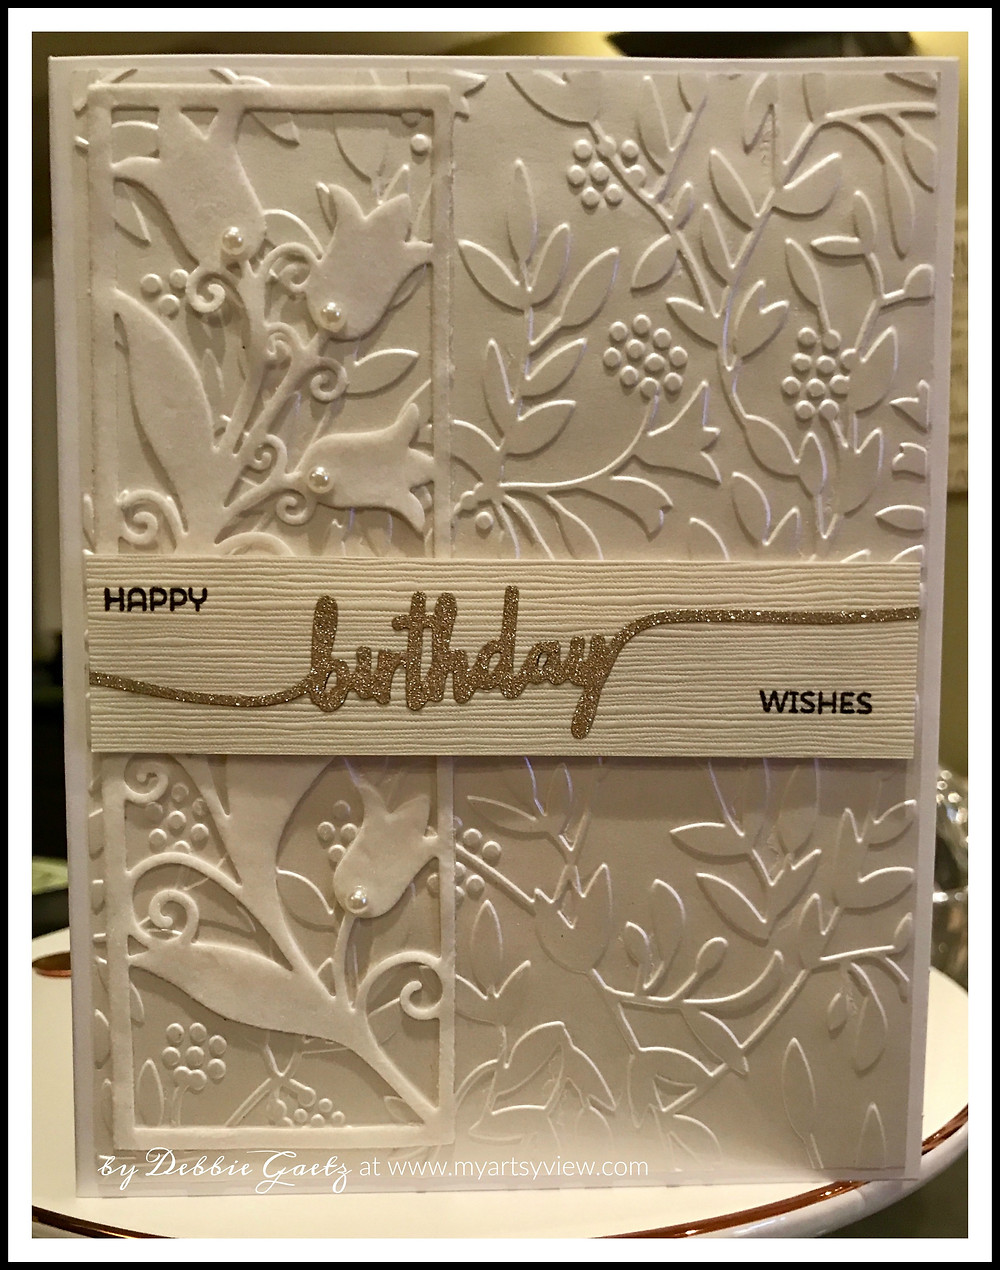 Tutti Designs, Craft Concepts, Dry Embossing, Die-Cutting, Heat Embossing, Tim Holtz Stamp Platform